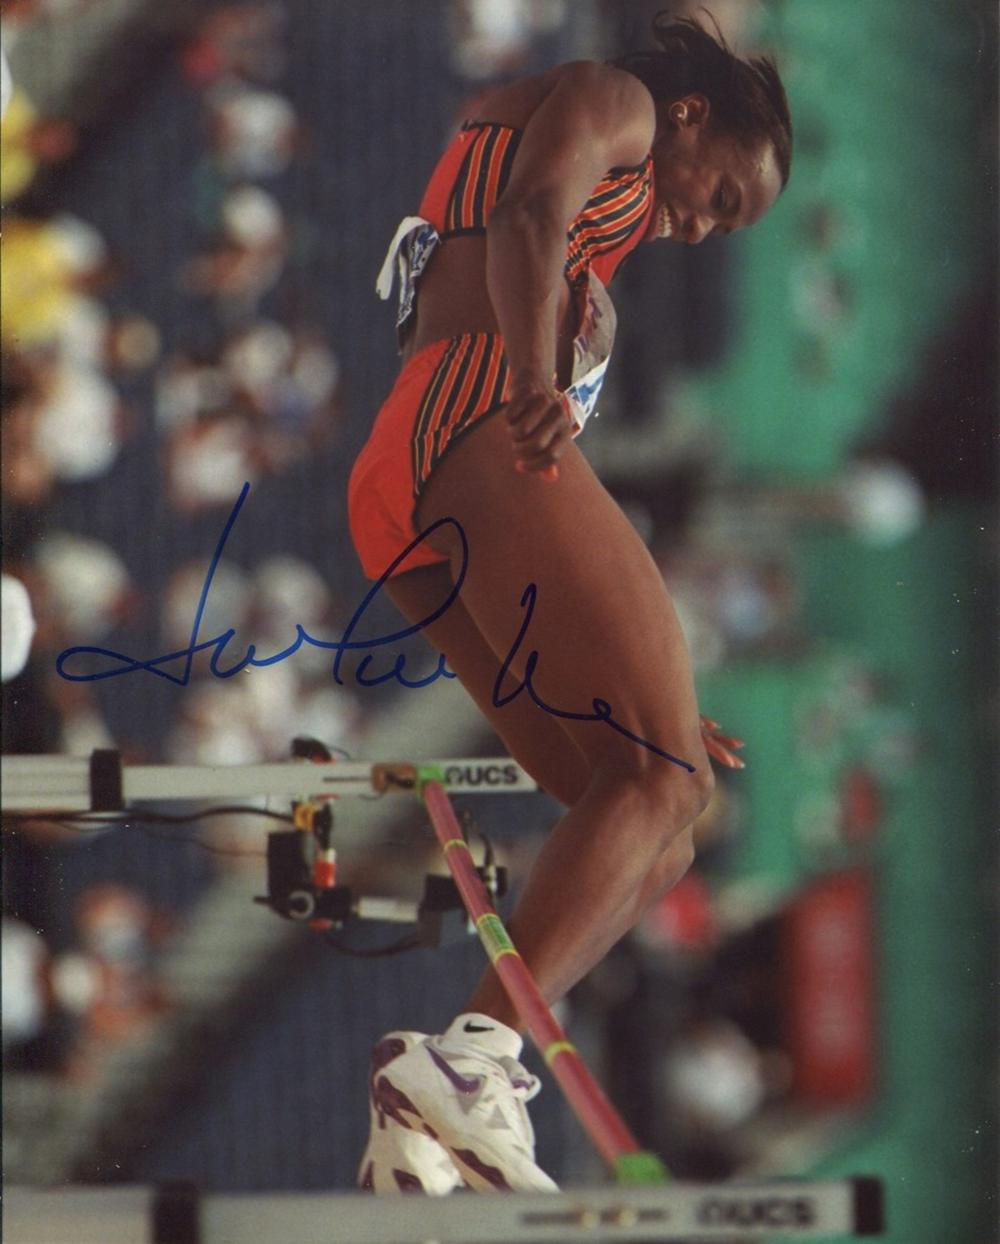 Jackie Joyner-Kersee signed 8x10 photo, ranked among the all-time greatest athletes in the